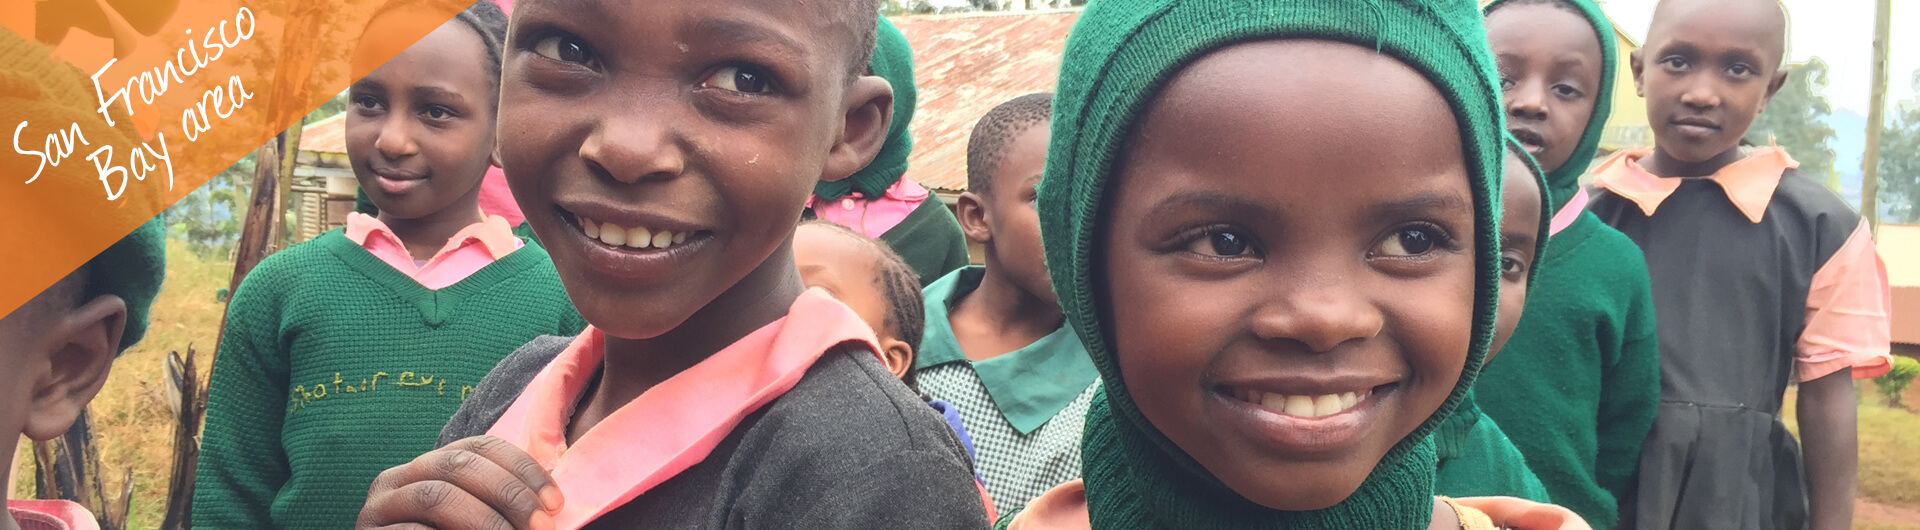 San Francisco Car Donation Banner | African Children Smiling Wearing School Uniforms